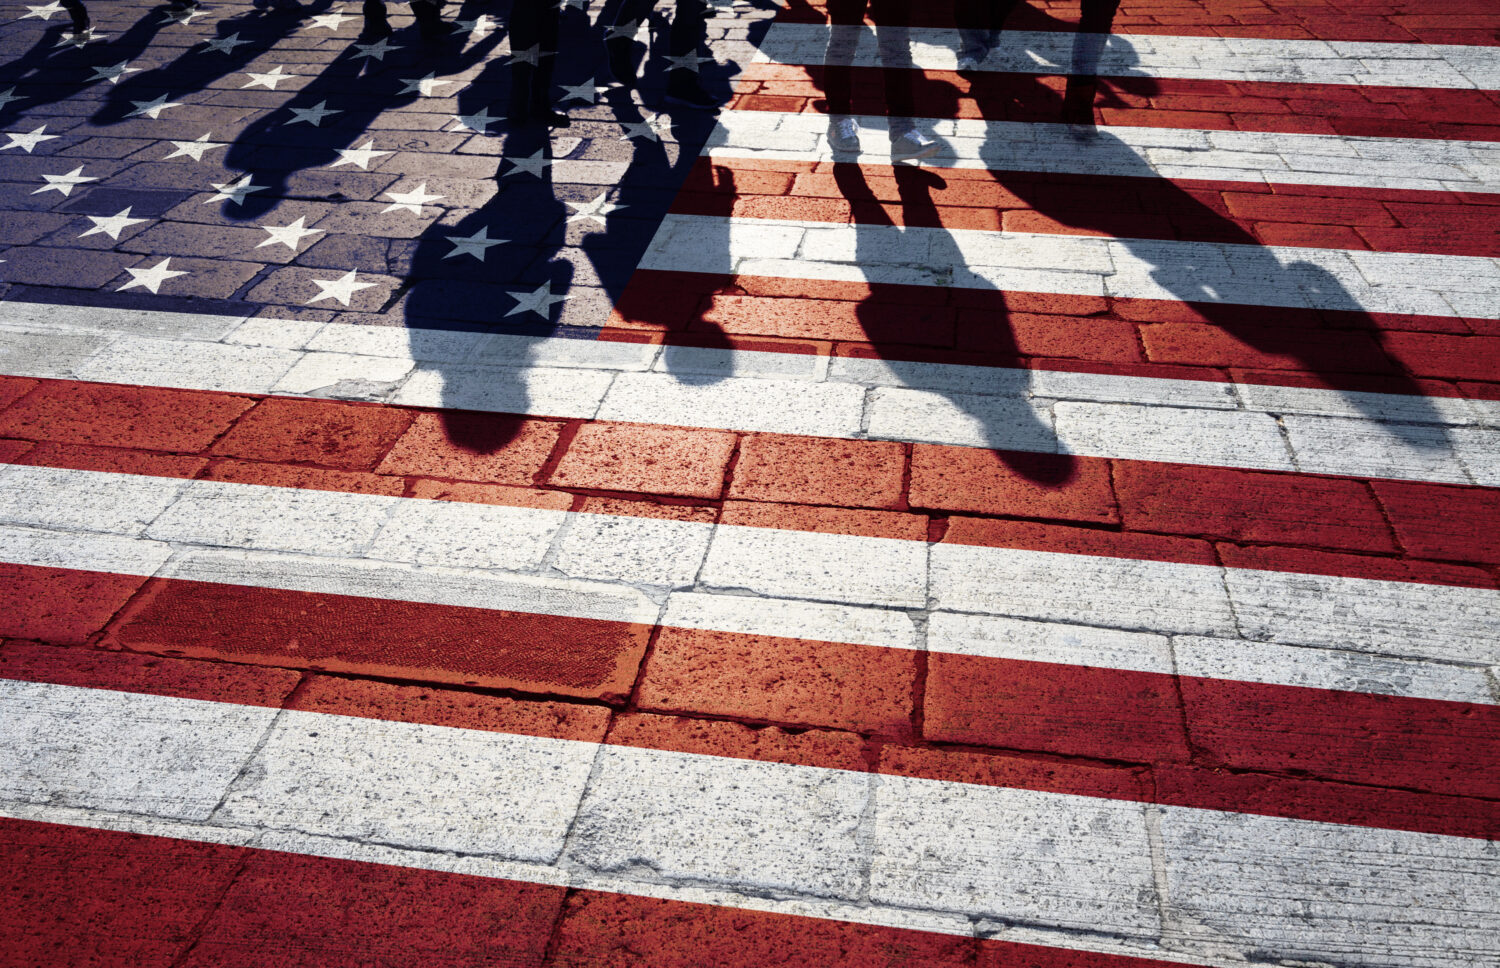 U.S. immigrant Shadows on a flag-painted paved street